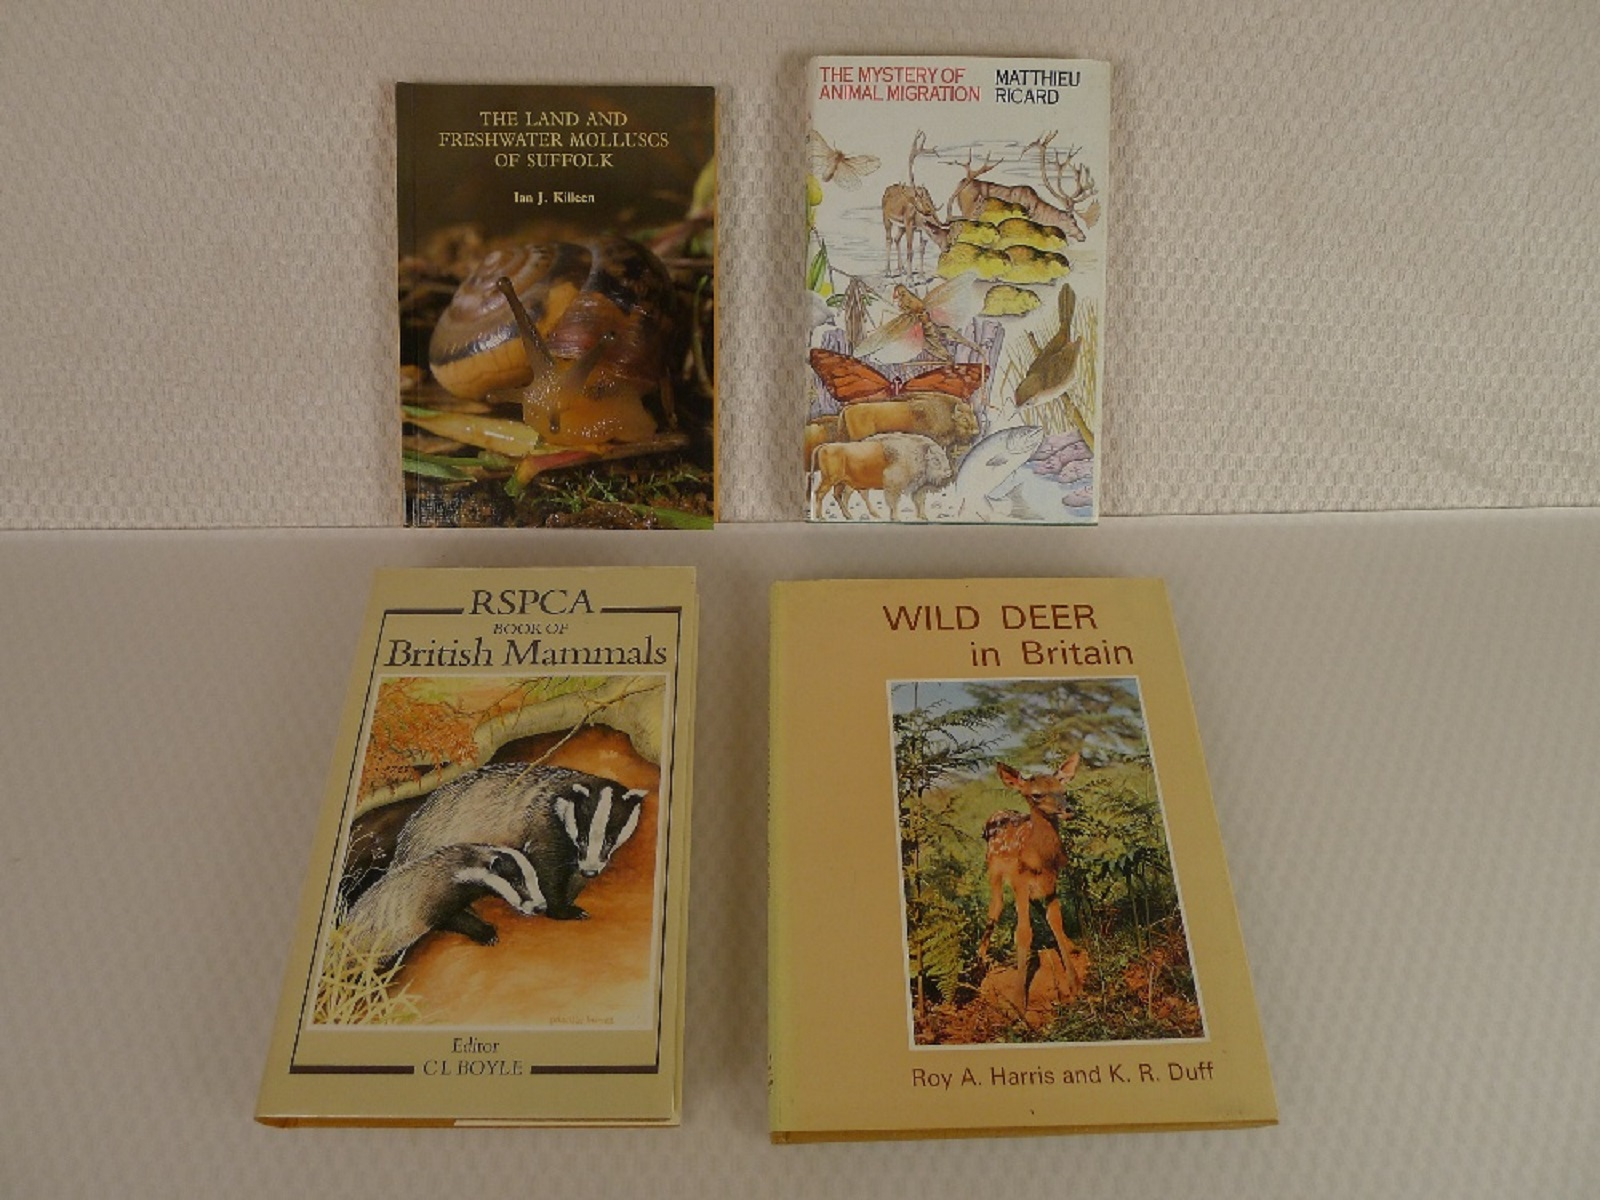 4 x various vintage hardback nature animal books comprising The Land and Freshwater Molluscs of